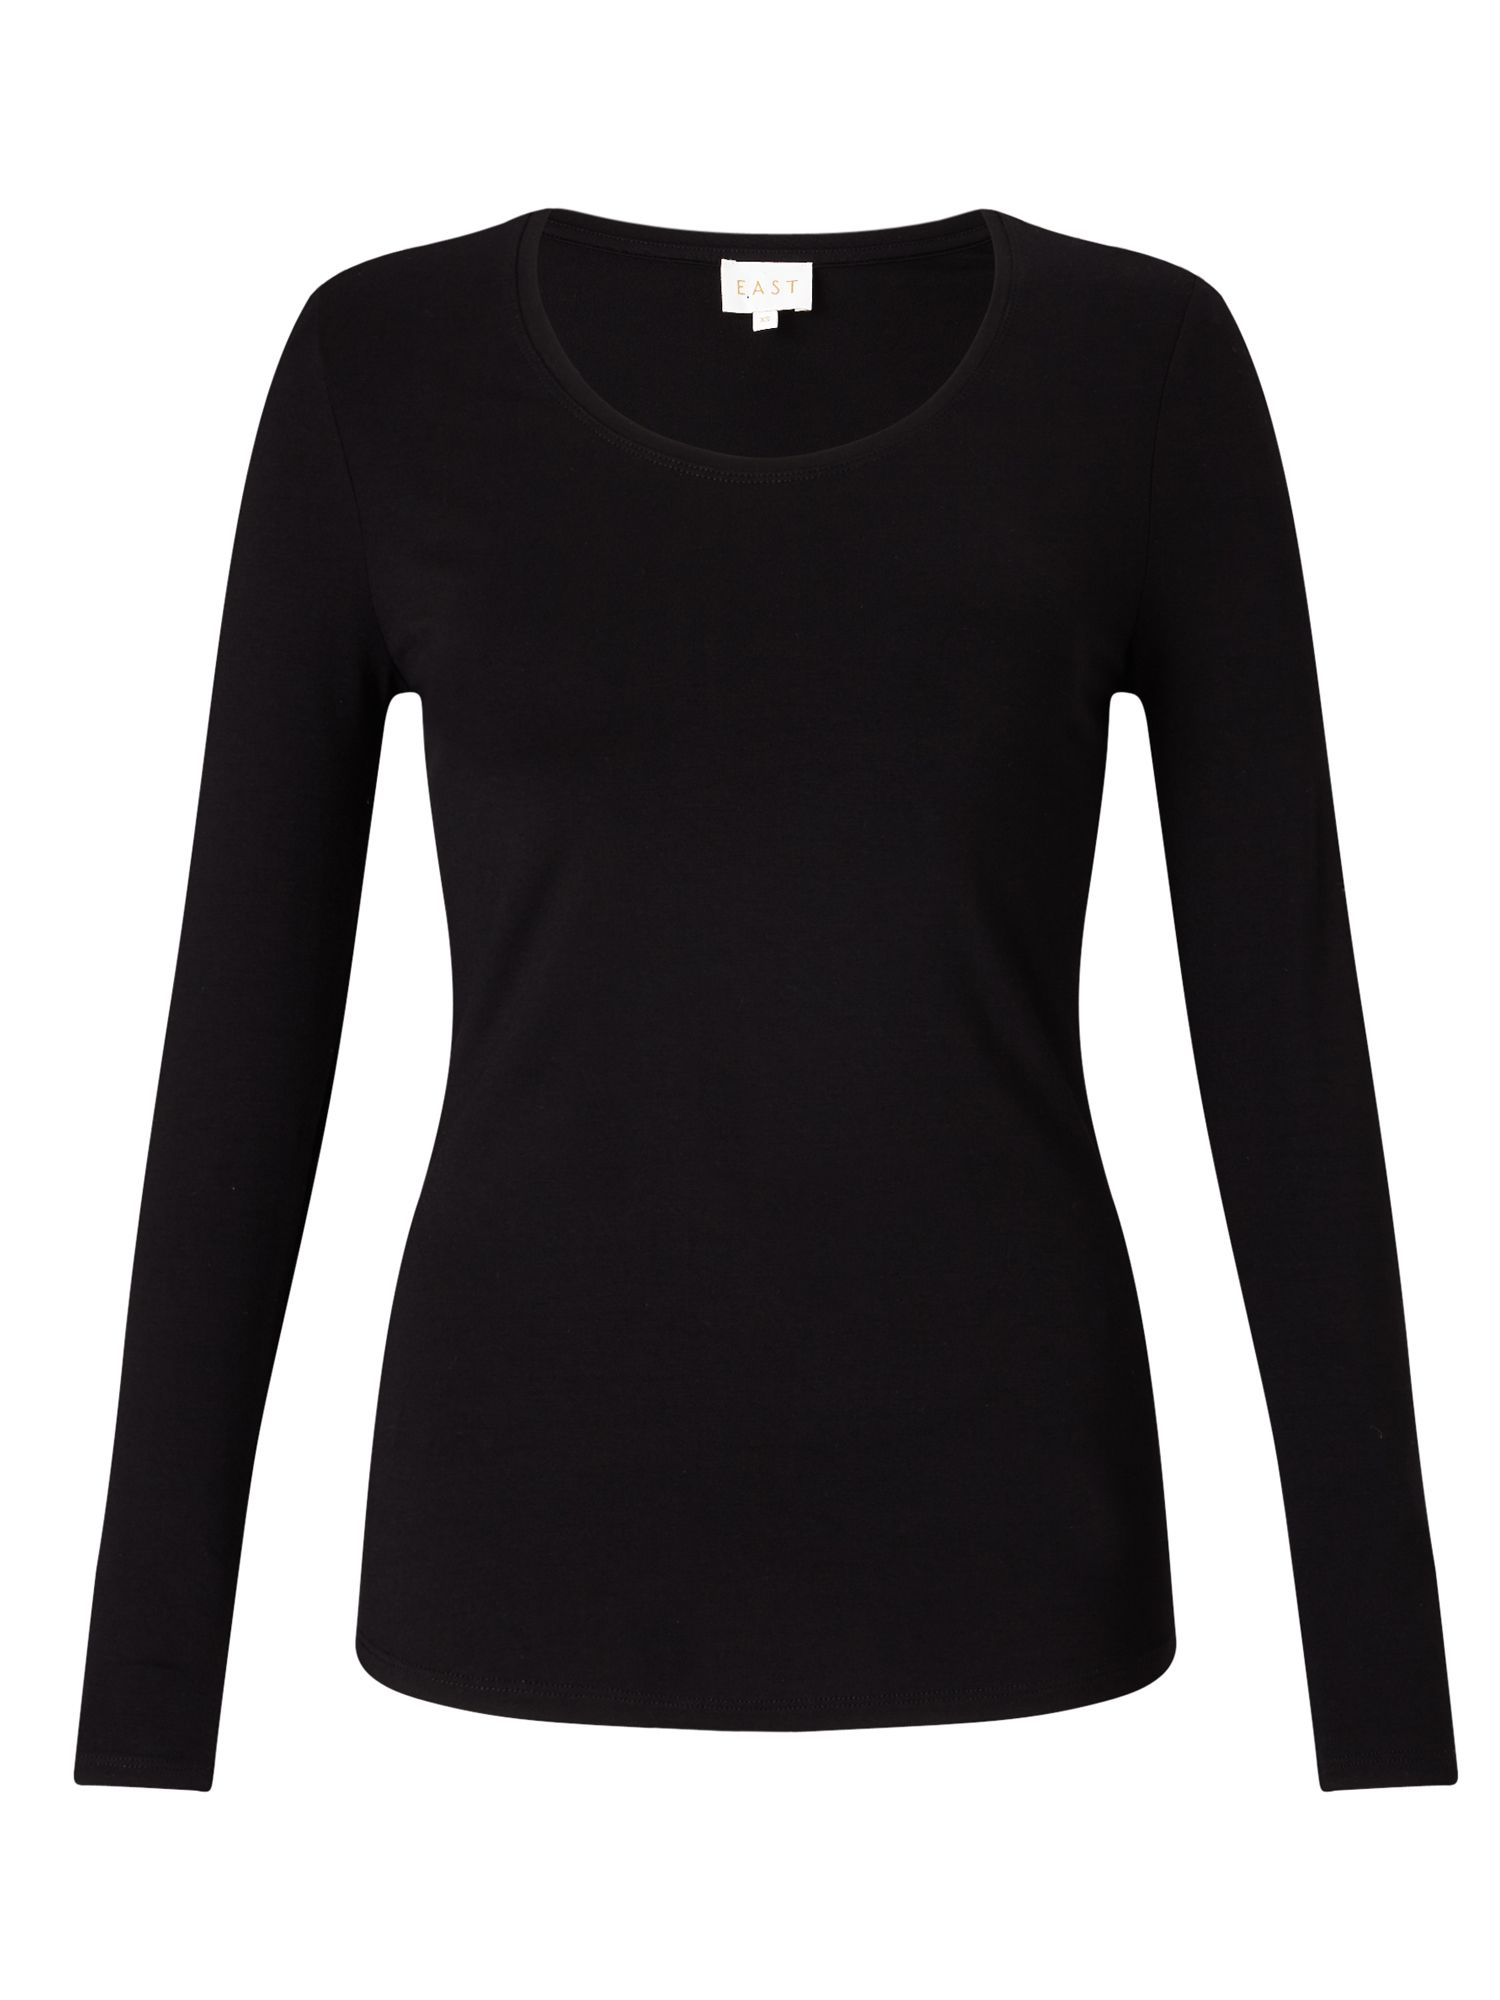 East Long Sleeve Jersey Top, Black